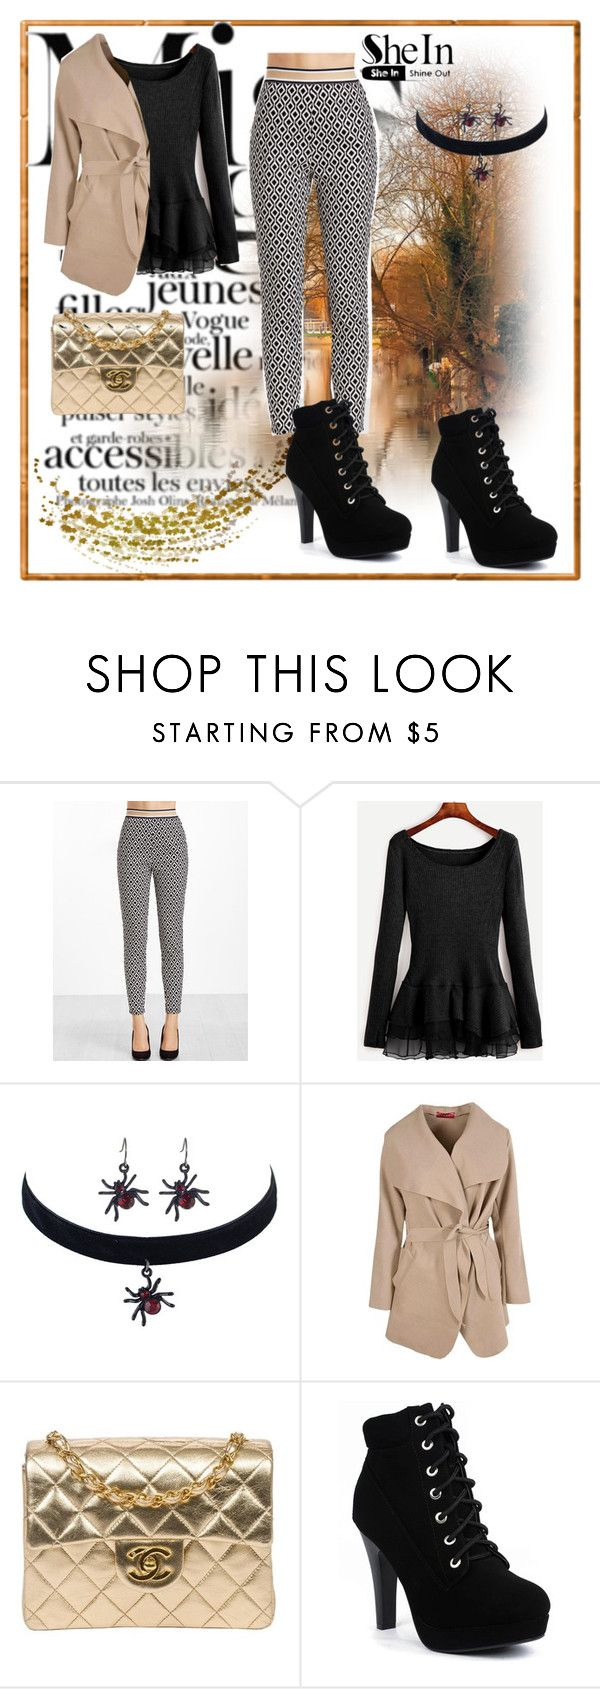 """""""SheIn 2"""" by dinka1-749 ❤ liked on Polyvore featuring Boohoo and Chanel"""